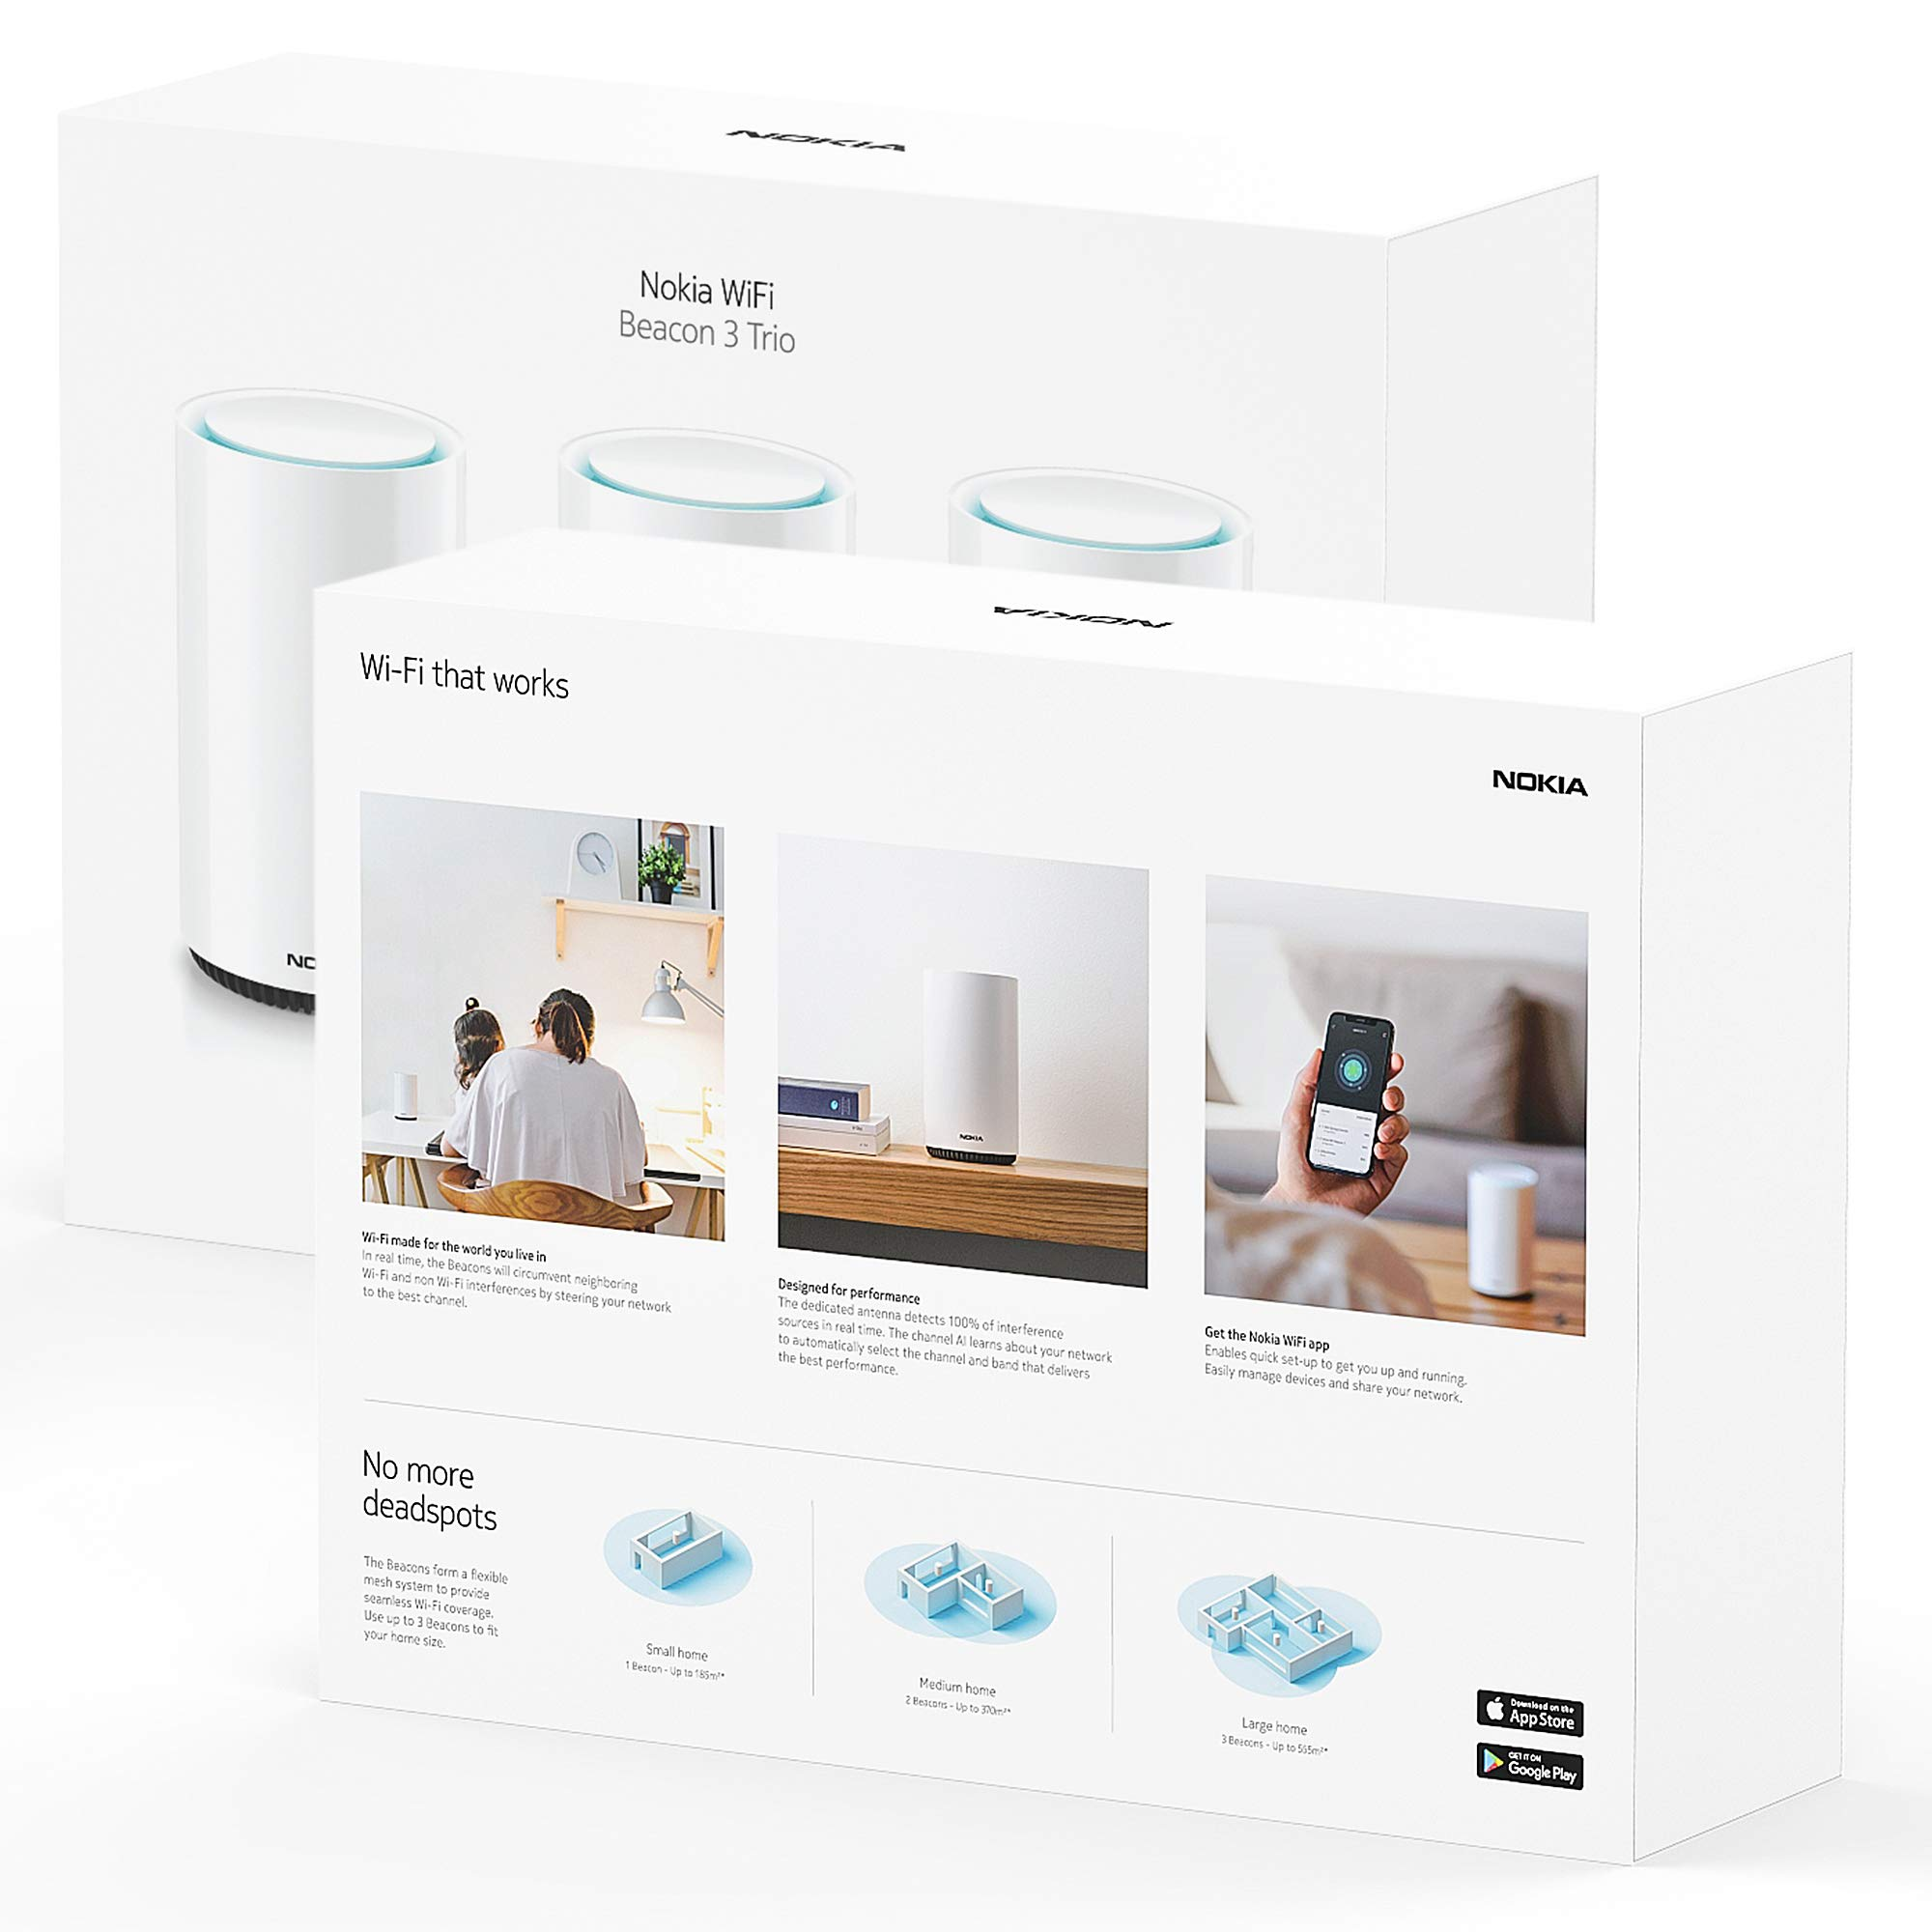 Nokia WiFi Beacon 3 Mesh Router System - Intelligent, Seamless Whole Home WiFi Coverage Extender - Connect Your Whole House WiFi Network, Ultra Fast Self-Healing Mesh Router System - Trio (3-Pack)